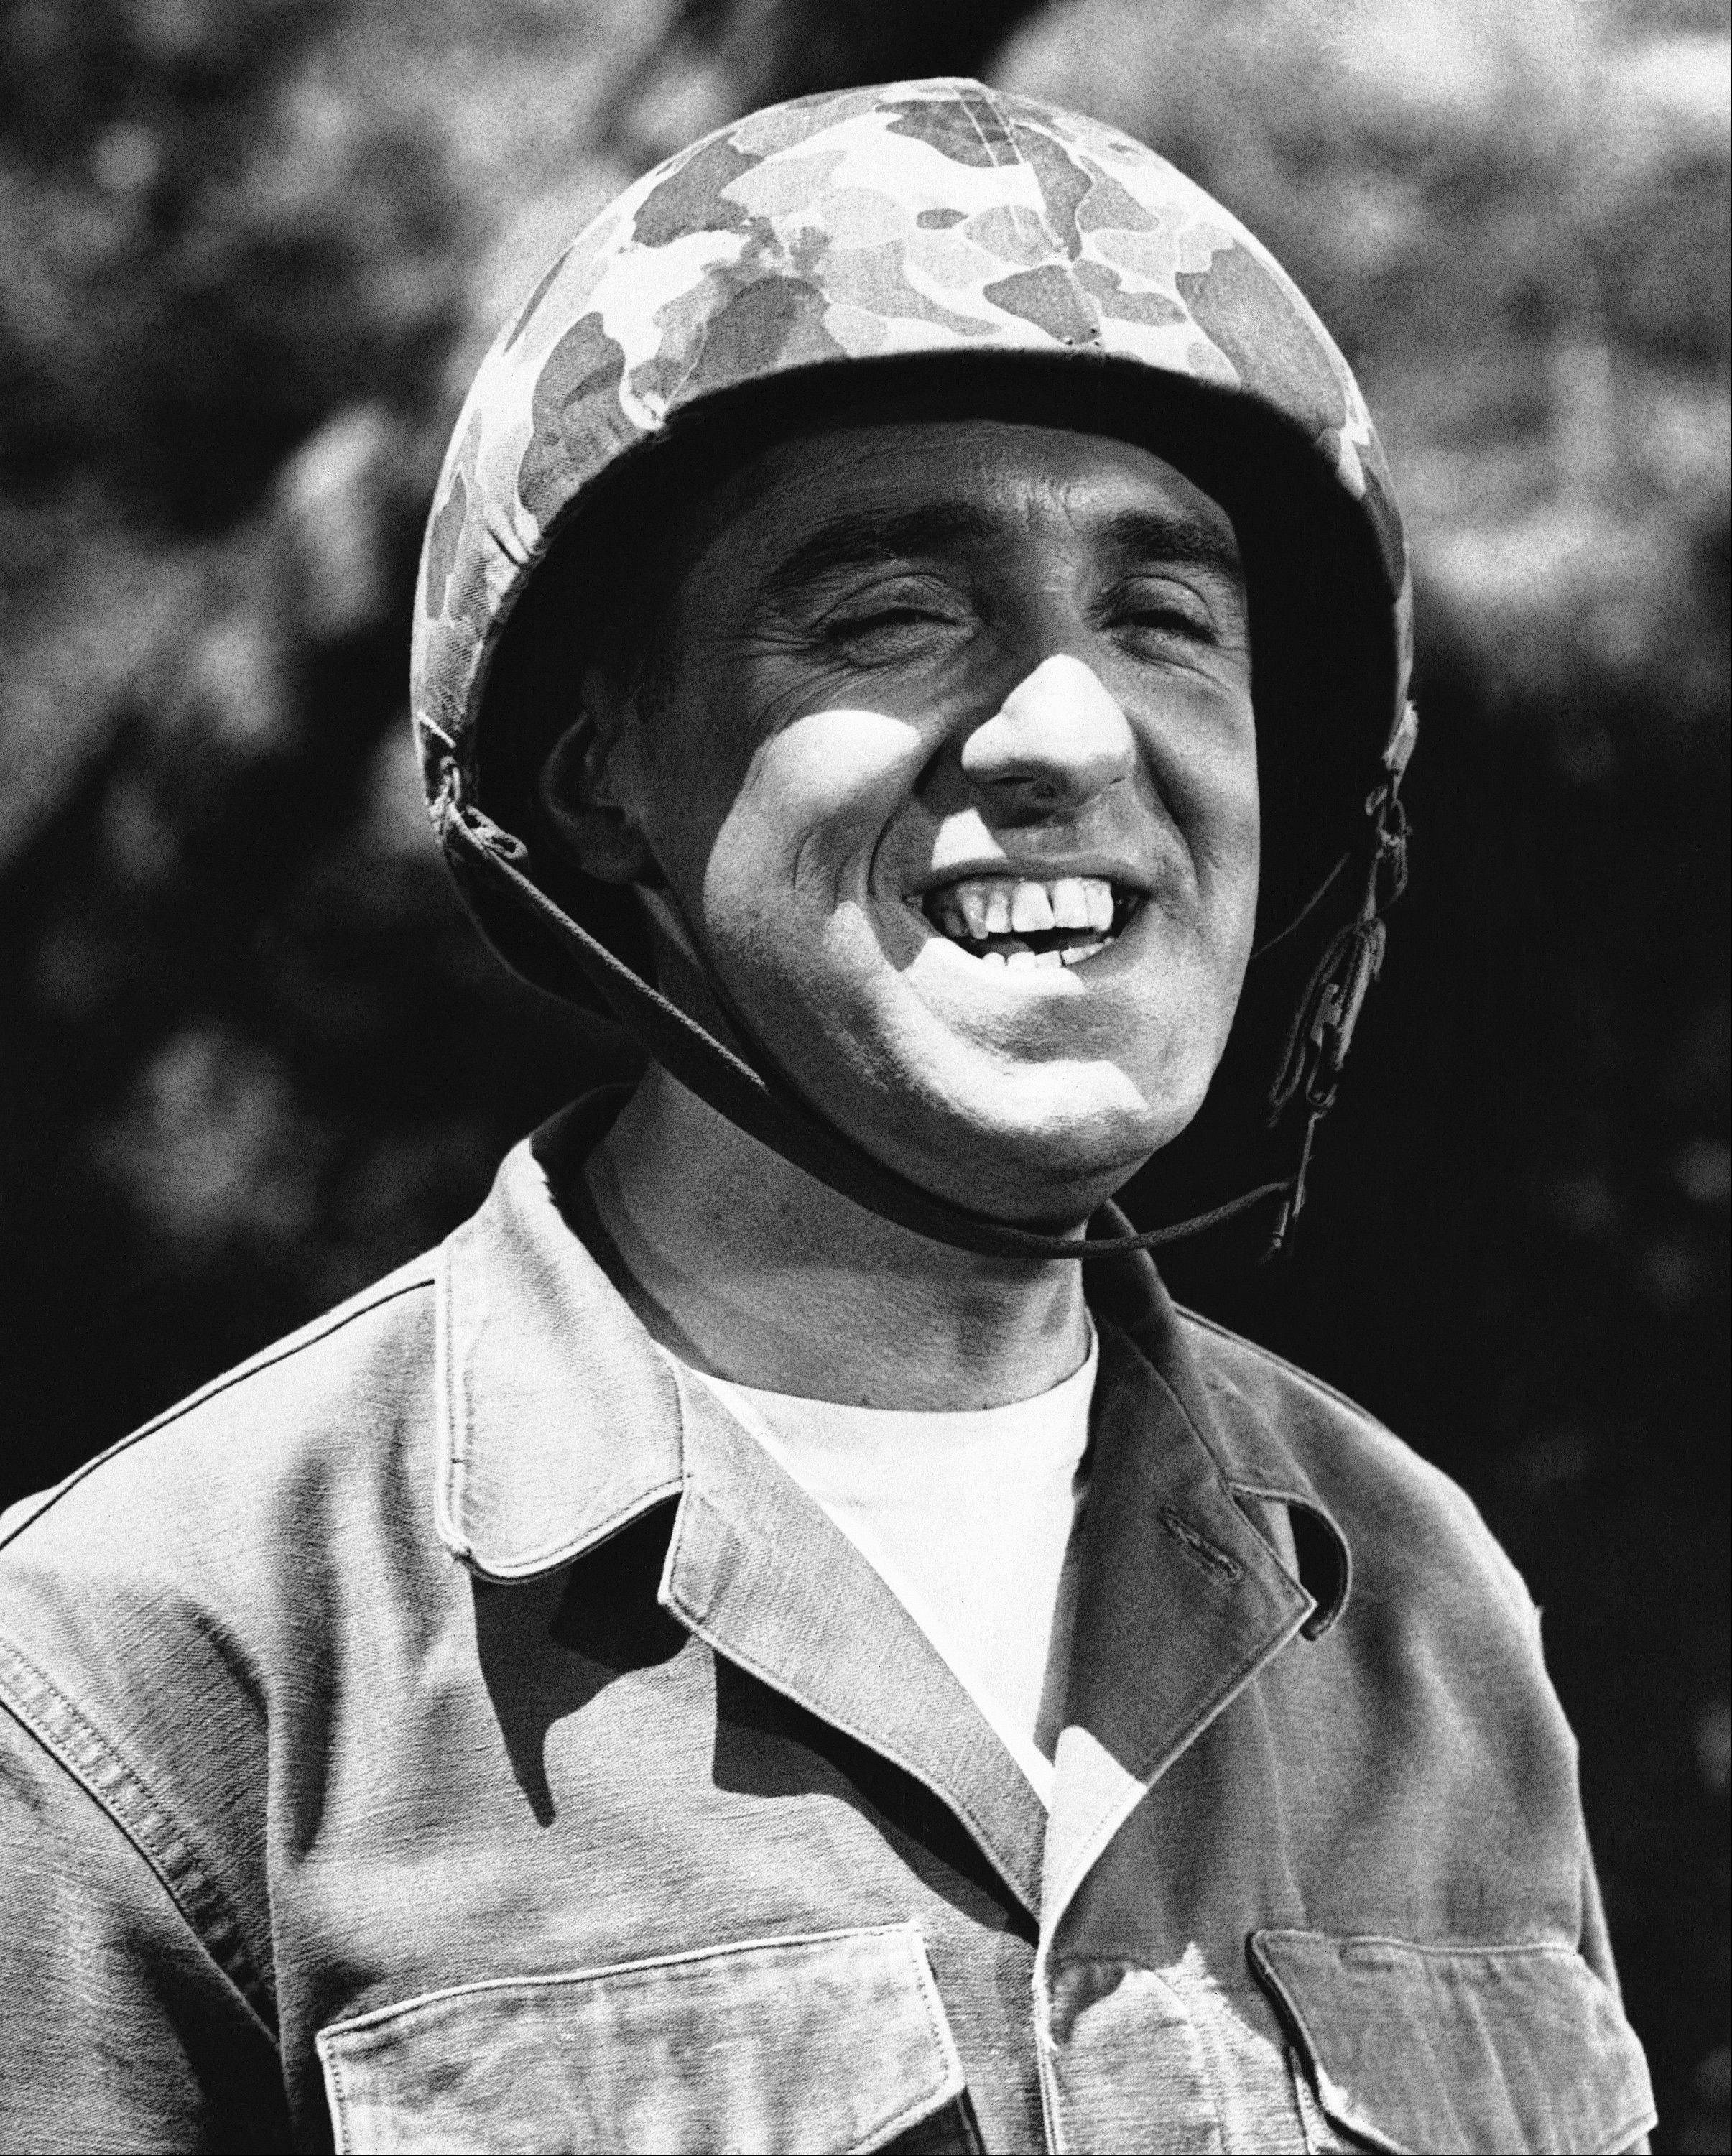 Associated Press file photo Jim Nabors is seen in character for his role of Gomer Pyle in this 1966 file photo. Jim Nabors and his partner, Stan Cadwallader, traveled from their Honolulu home to Seattle to be married Jan. 15, 2013.